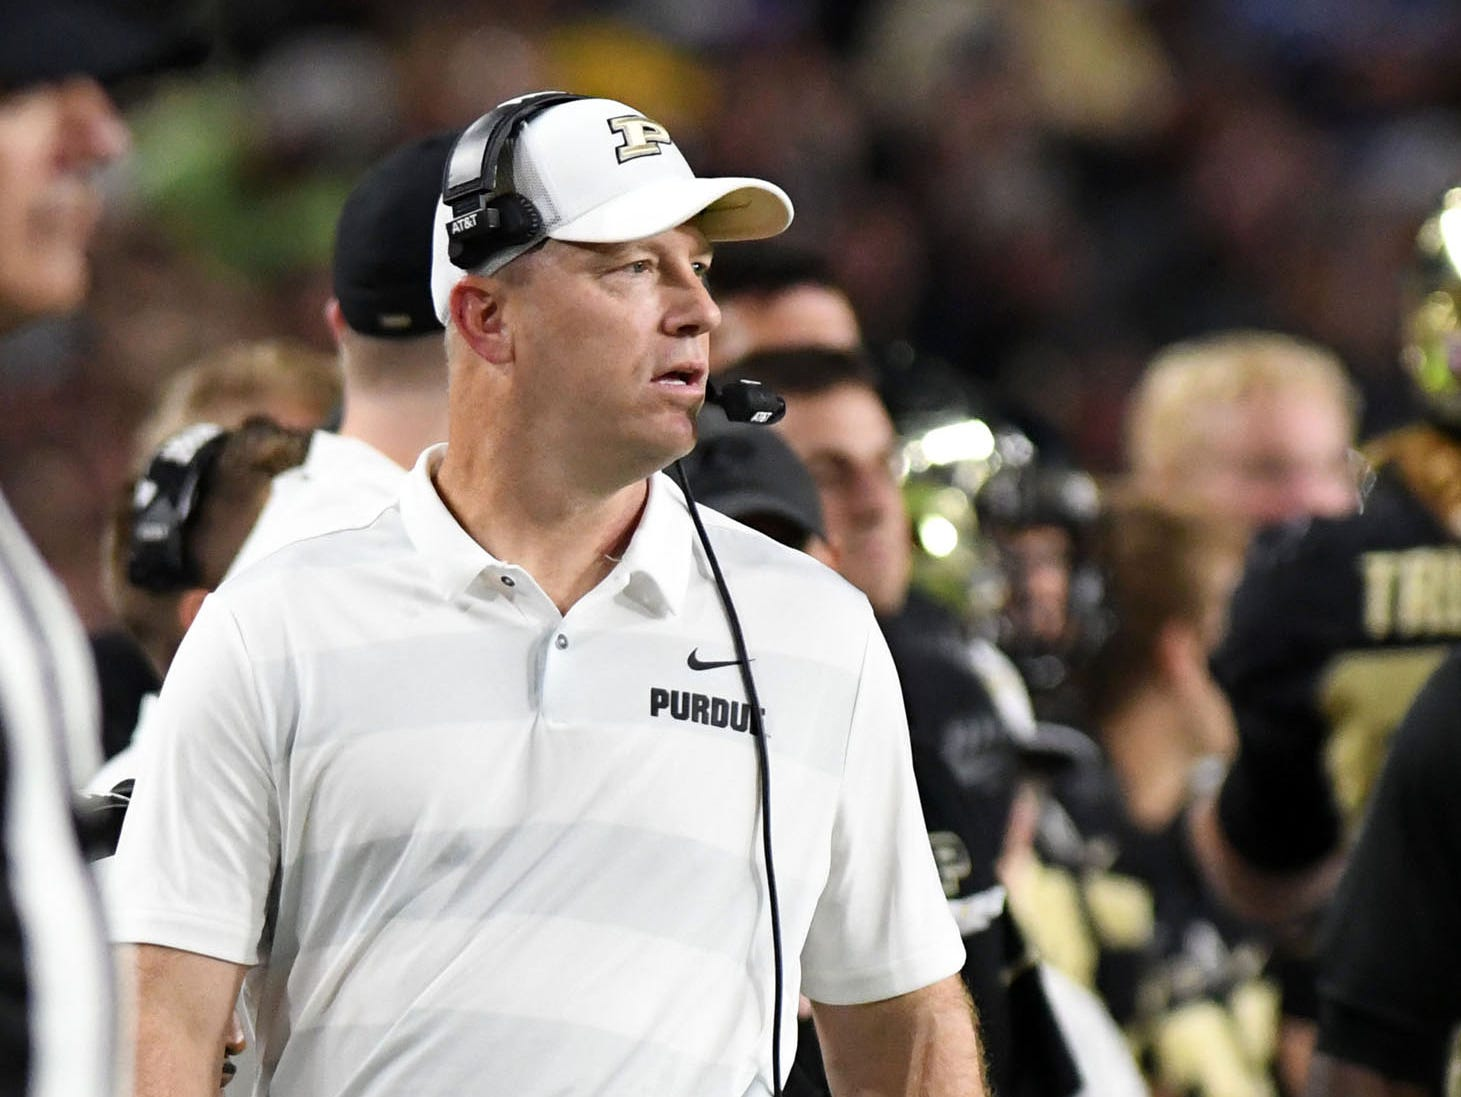 Aug 30, 2018; West Lafayette, IN, USA; Purdue Boilermaker head coach Jeff Brohm walks the sidelines in the first half against the Northwestern Wildcats at Ross-Ade Stadium. Mandatory Credit: Thomas J. Russo-USA TODAY Sports